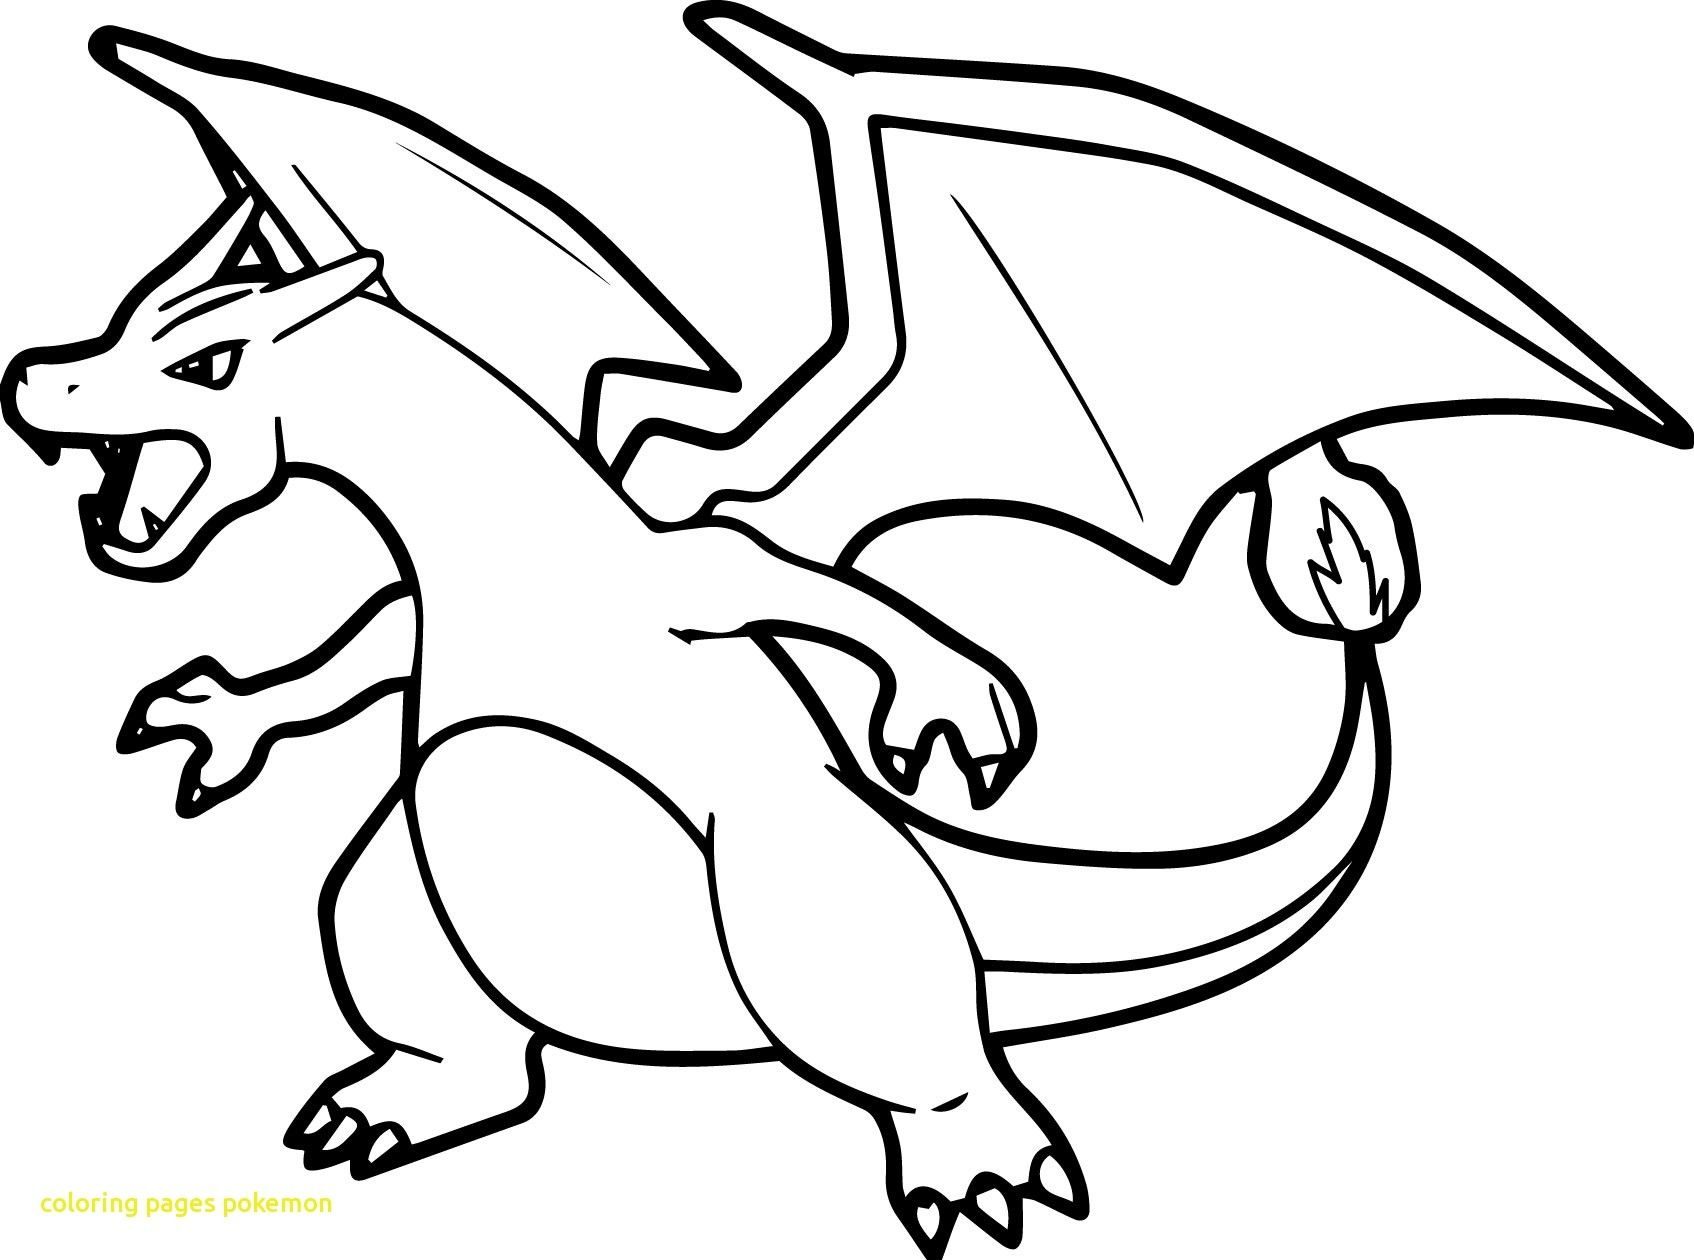 image about Charizard Printable known as Refreshing Pokemon Charizard Coloring Internet pages Choice Printable